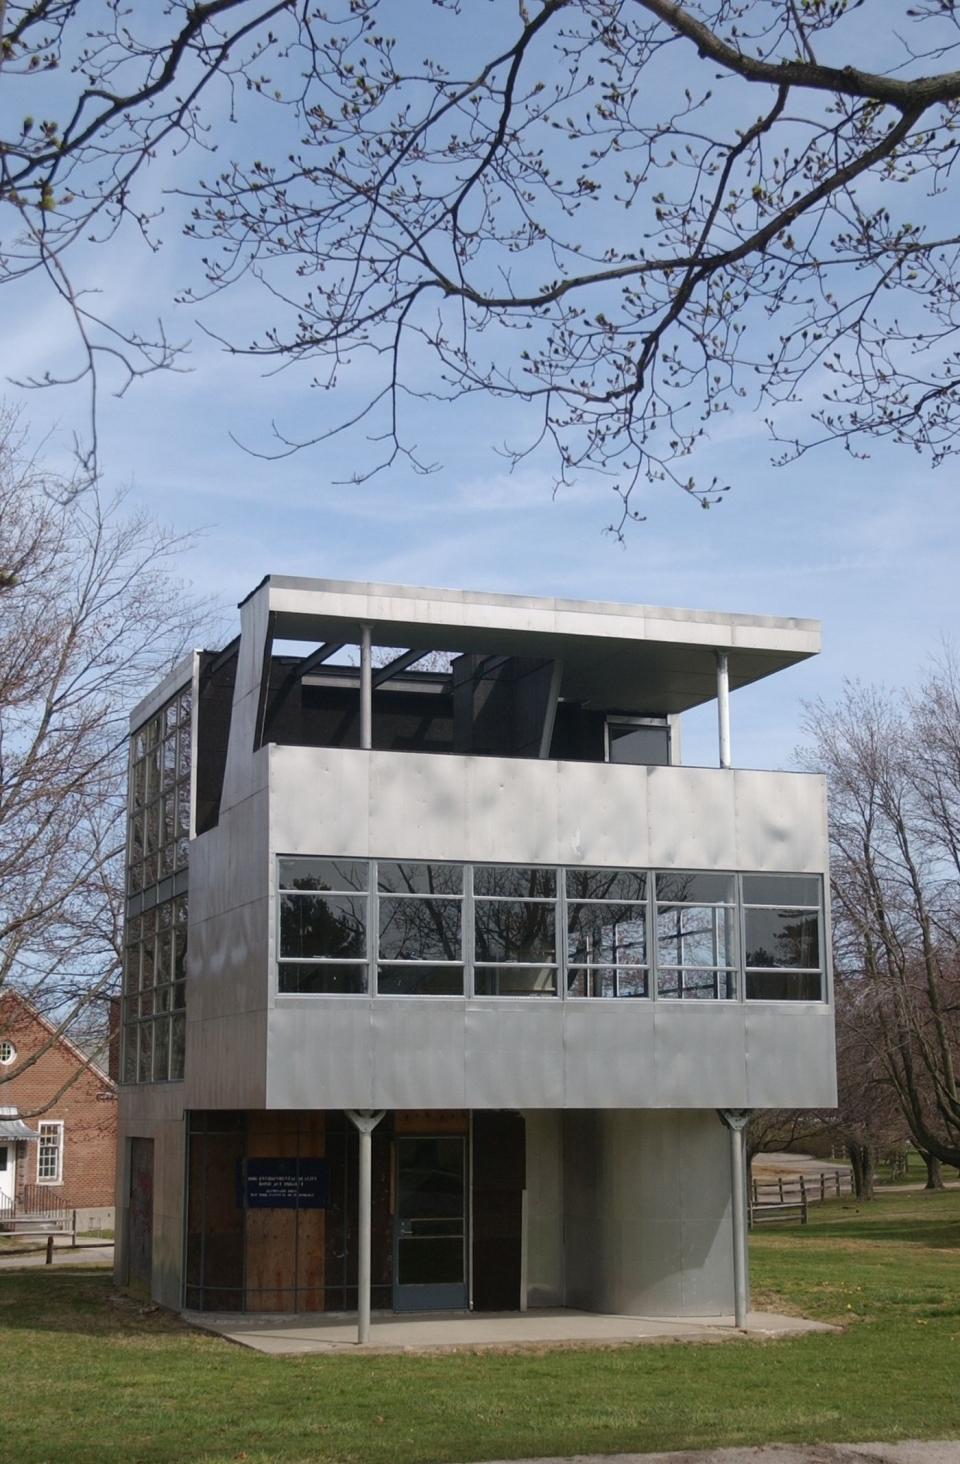 The Aluminaire House on its original site in Long Island, N.Y., 2002